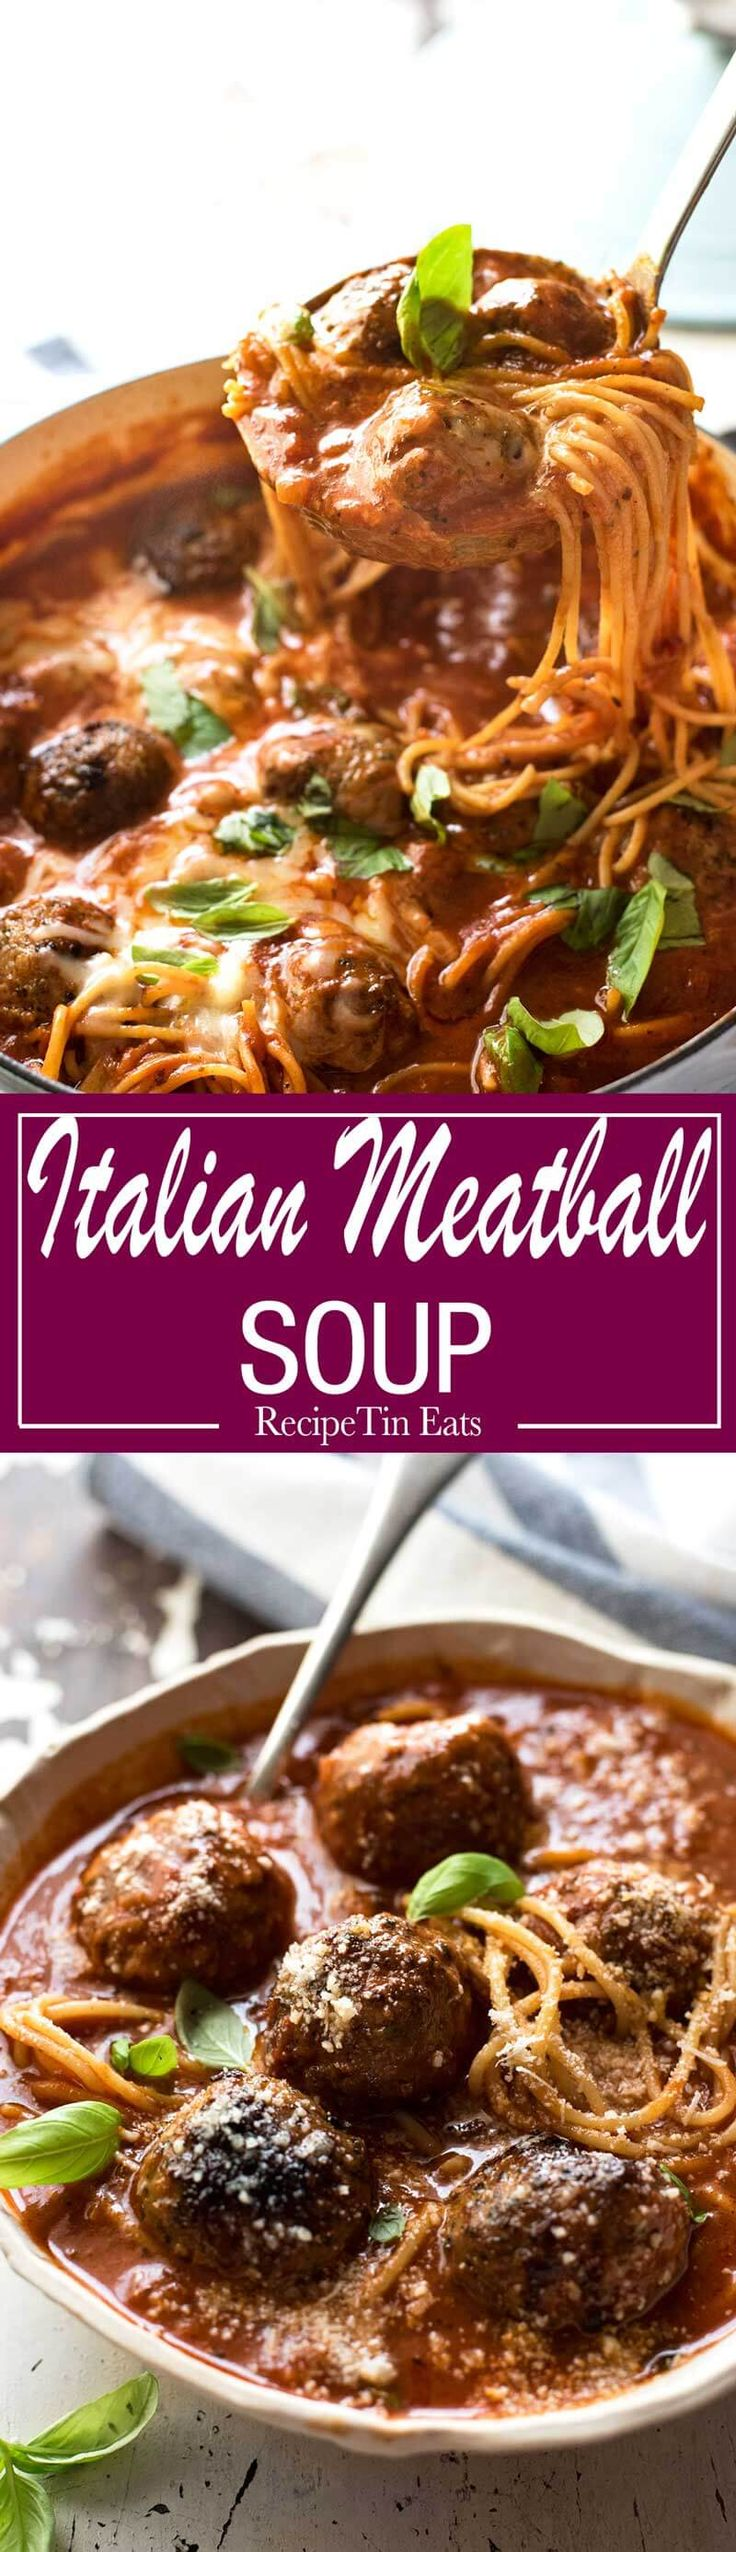 Italian Meatball Soup - Extra juicy, soft & tasty meatballs in a tomato…